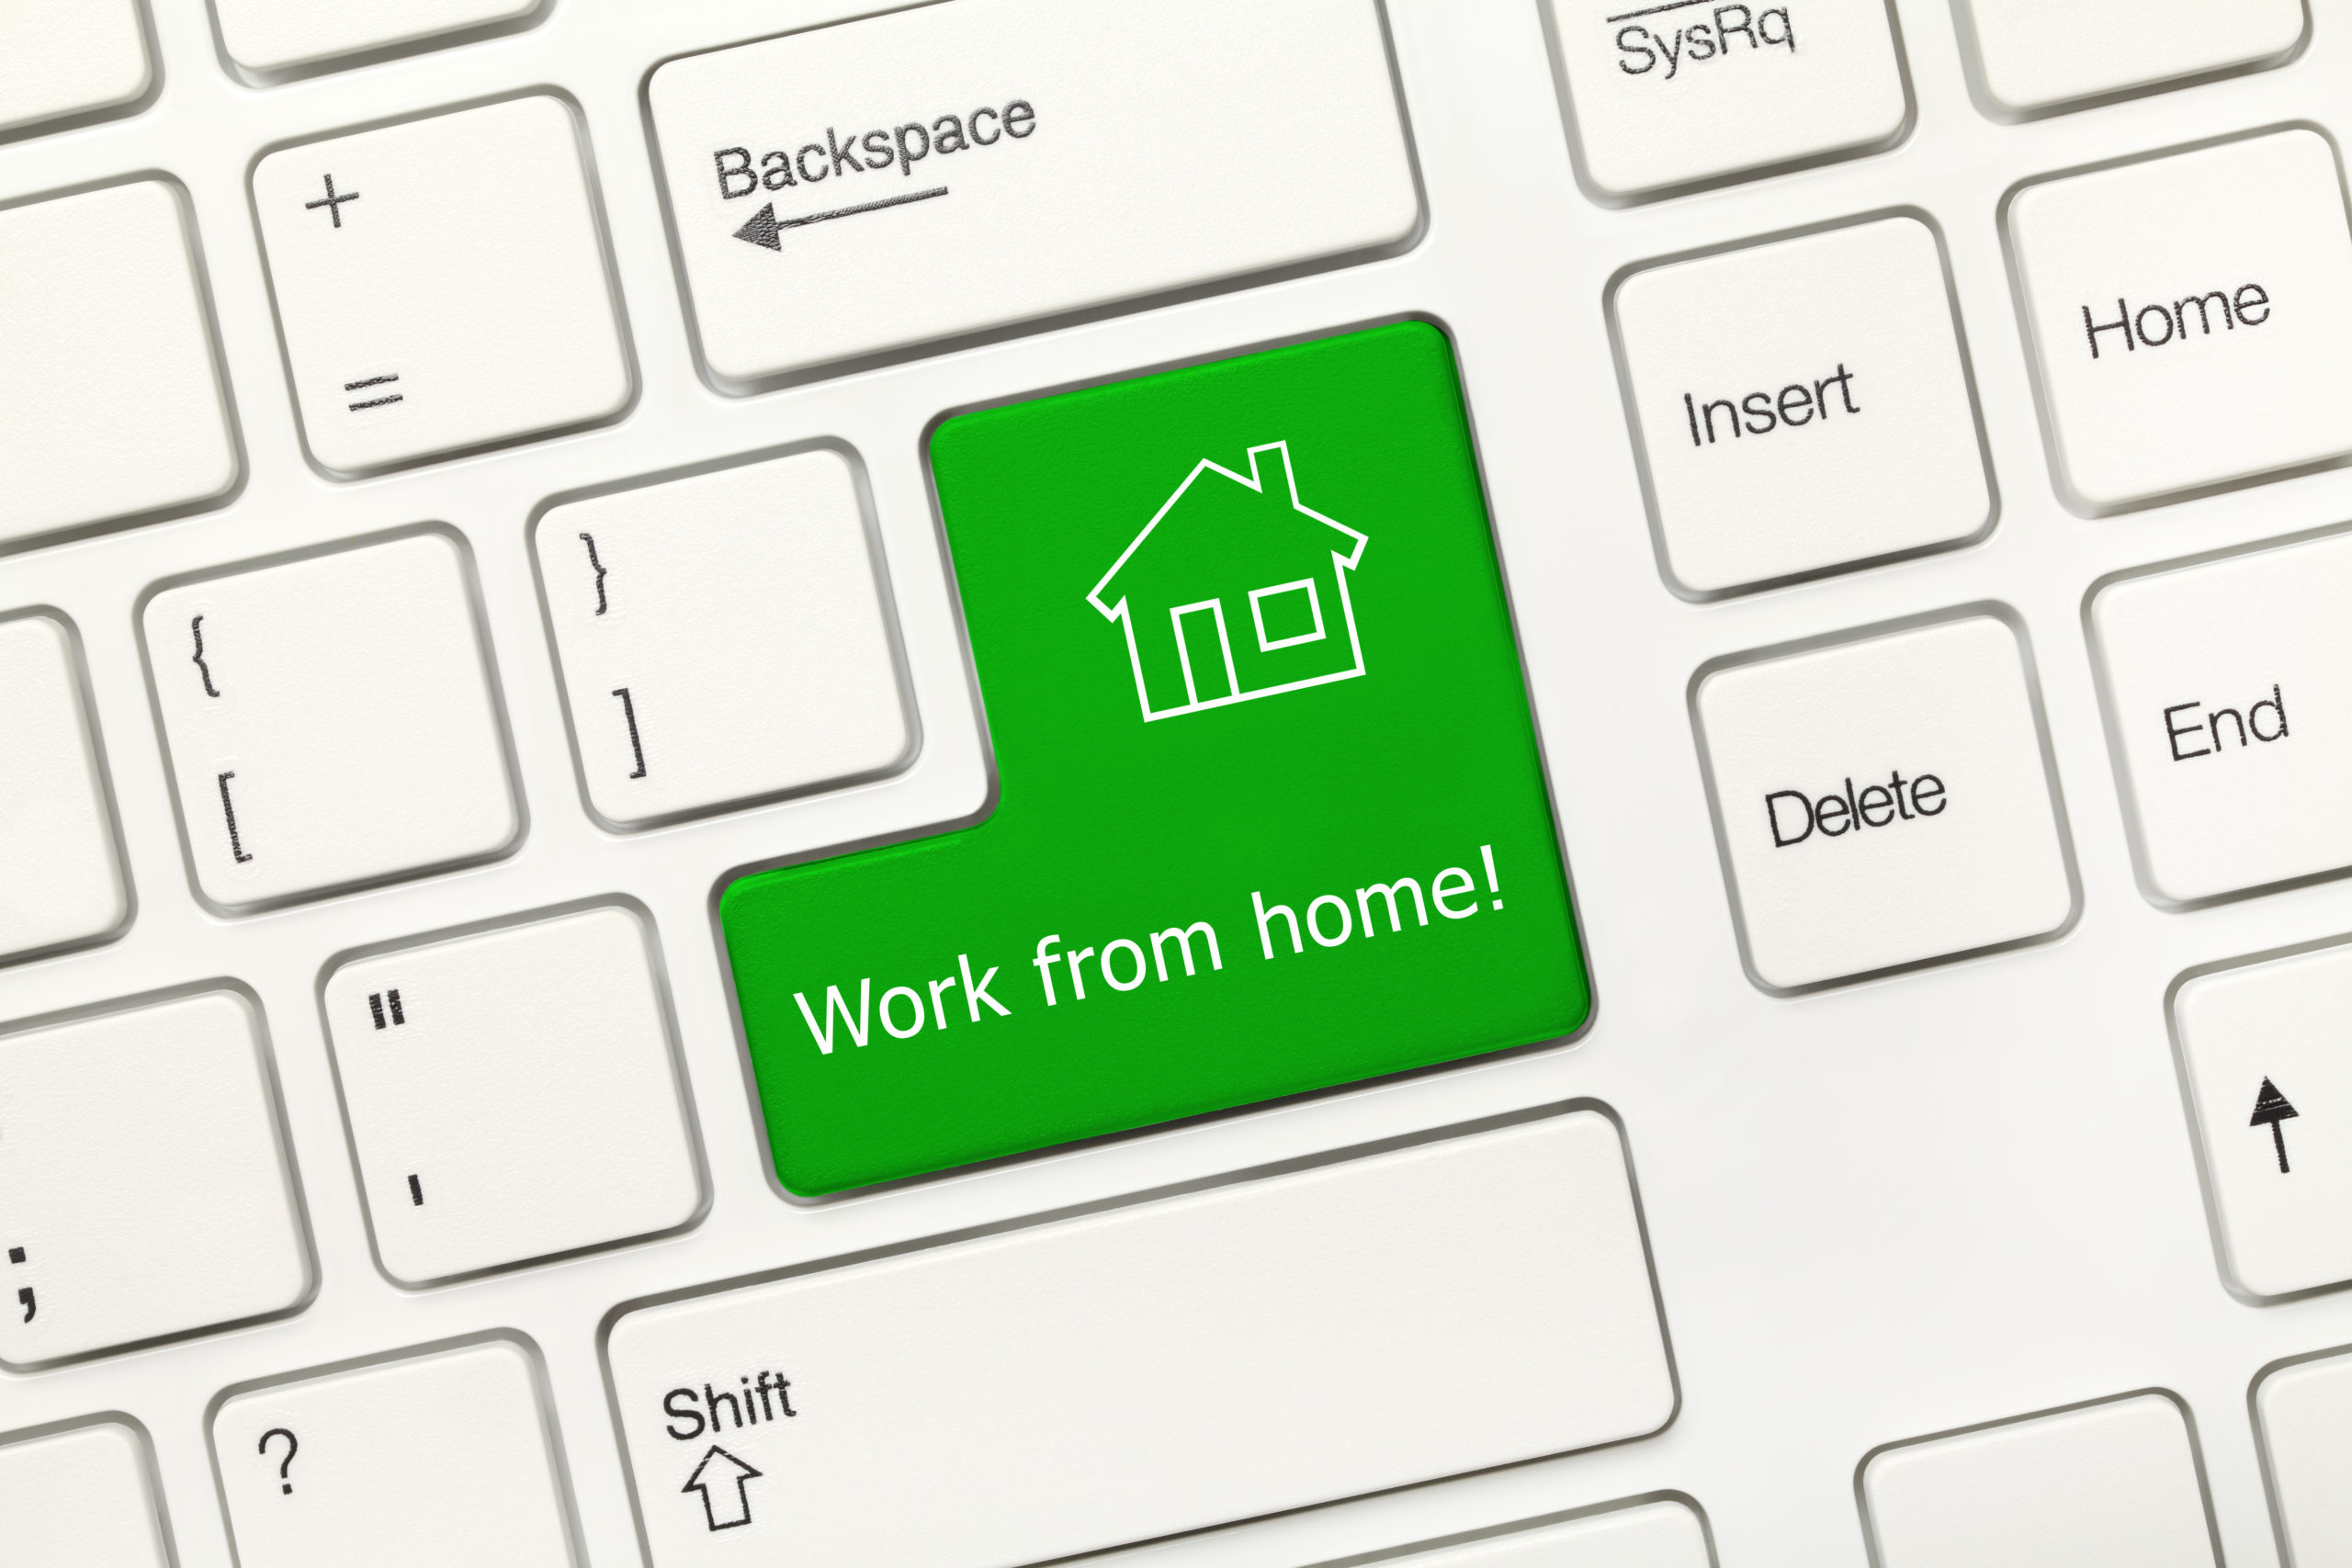 Close-up view on white conceptual keyboard - Work from home (green key)